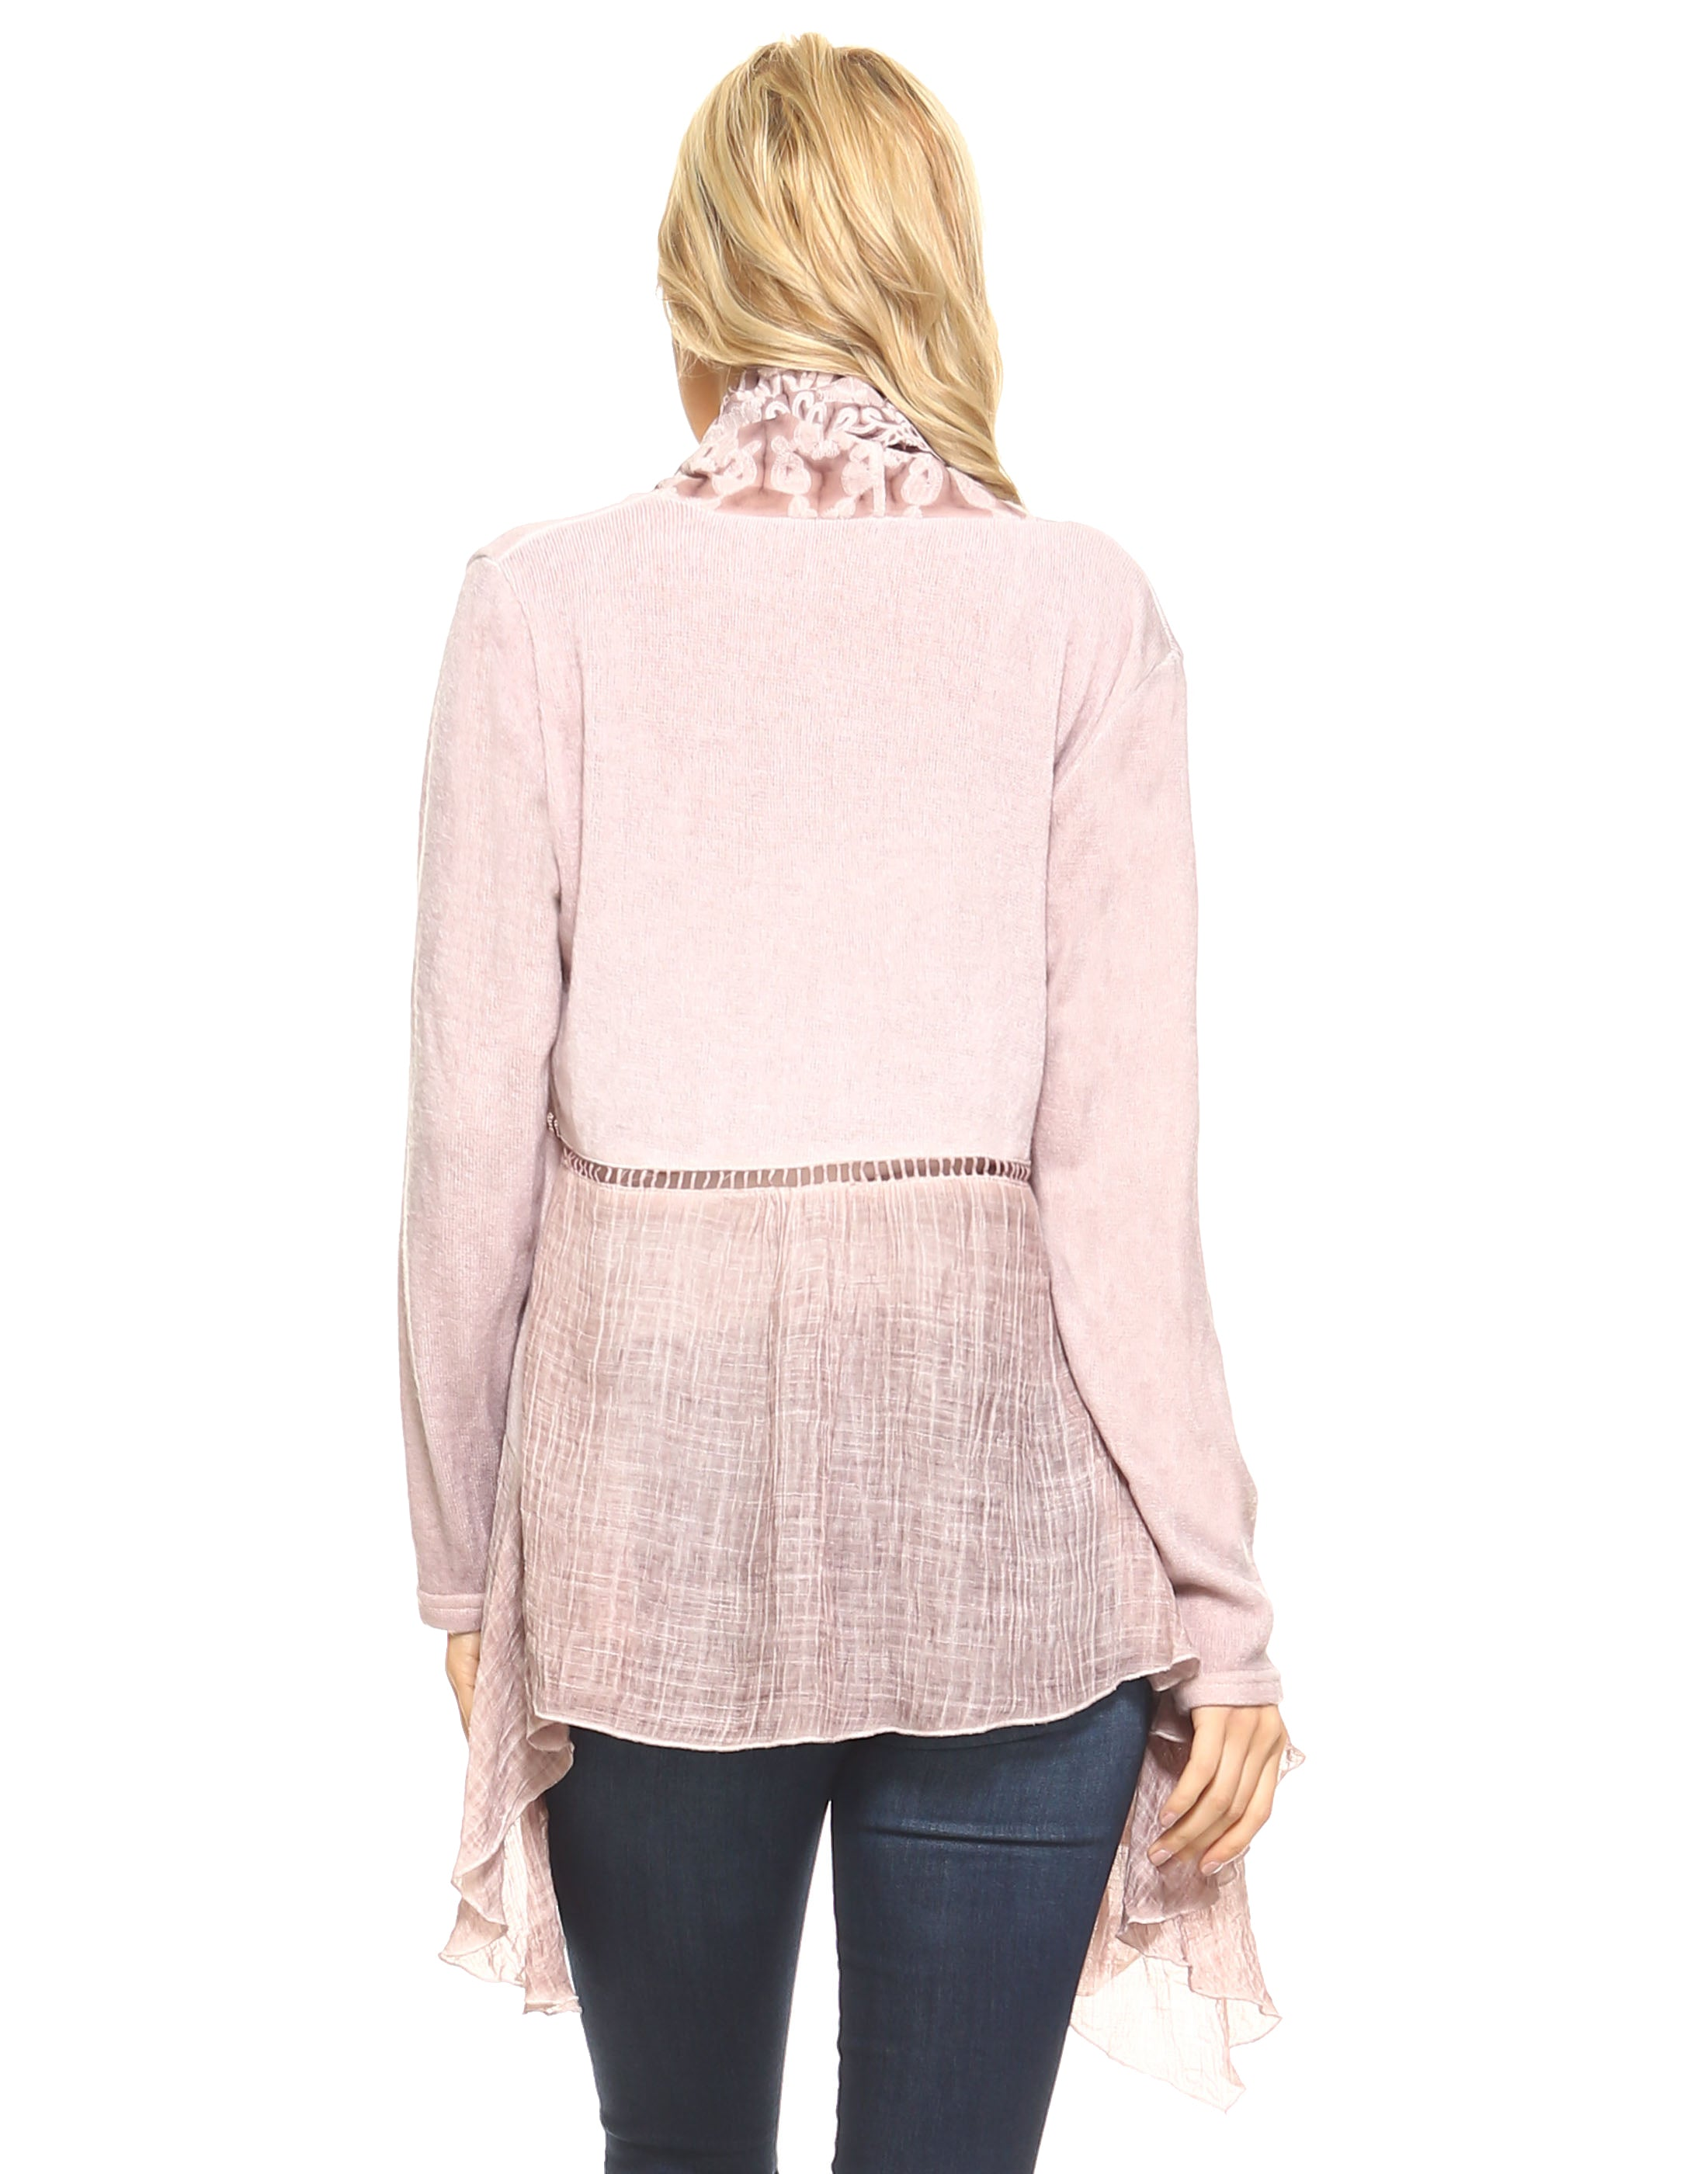 Dusty Pink Scalloped Lace Front Open Cardigan